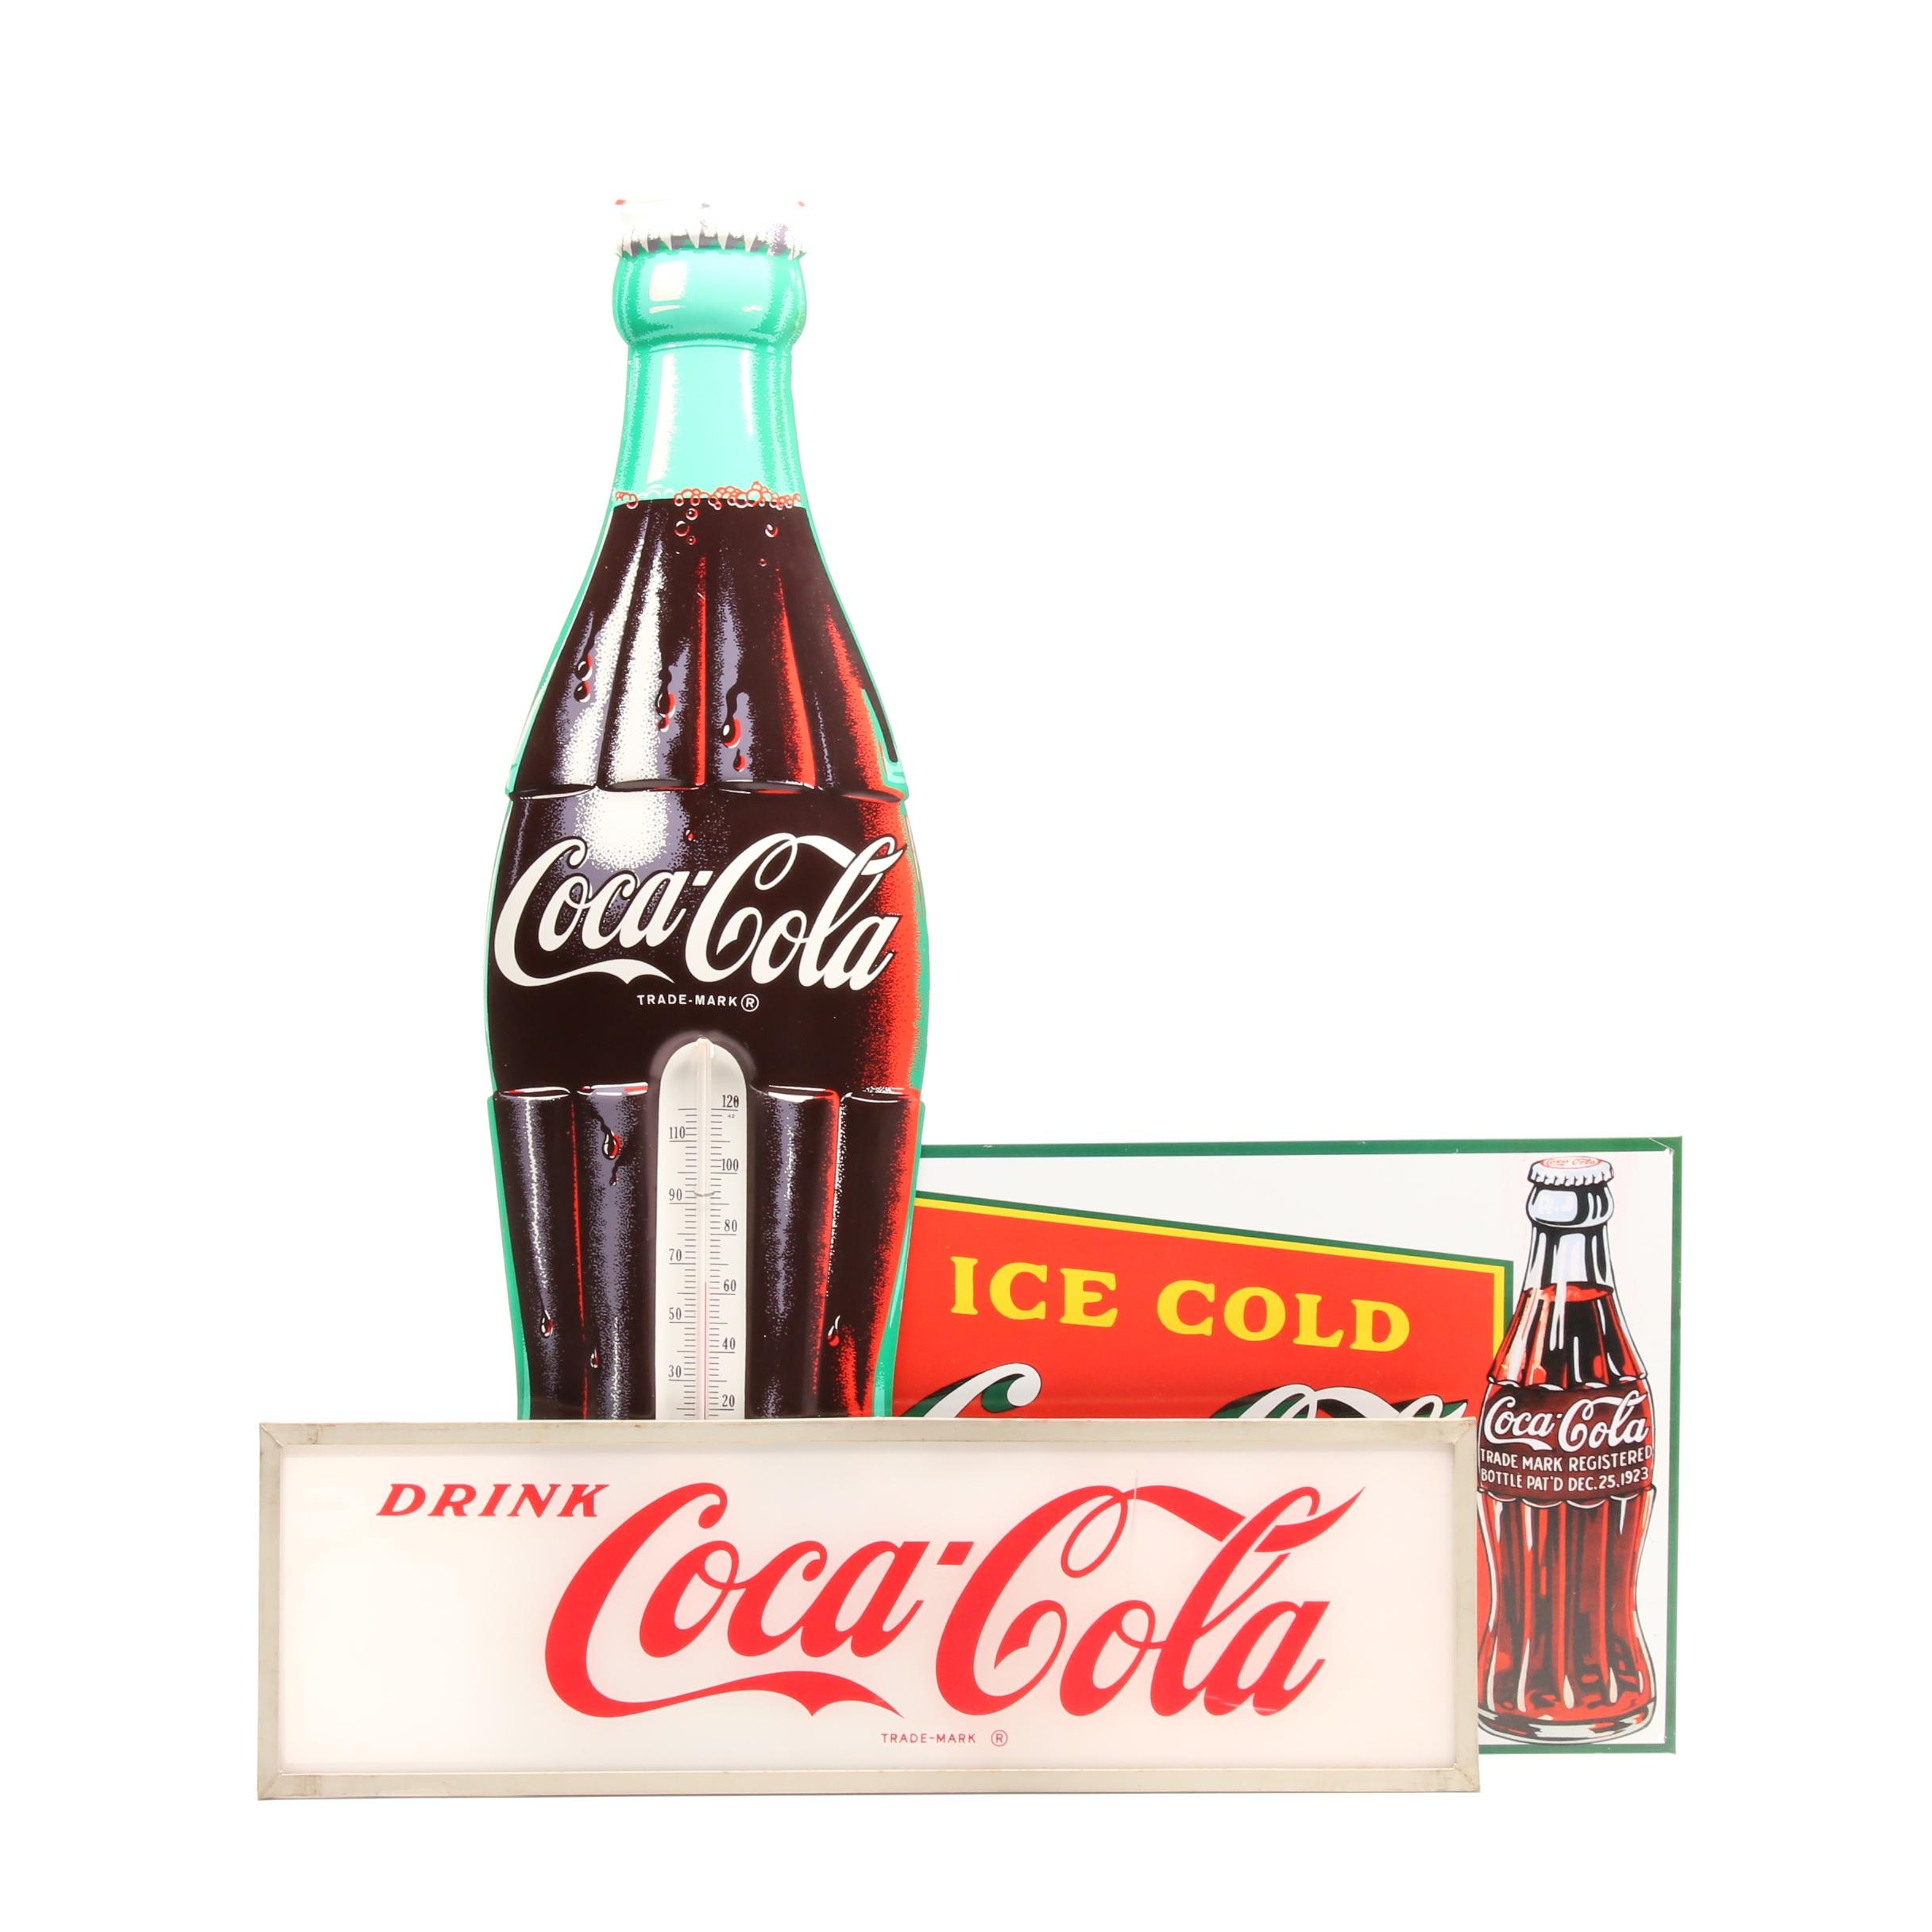 Metal and Reverse Printed Plexiglass Coca-Cola Signage with Thermometer